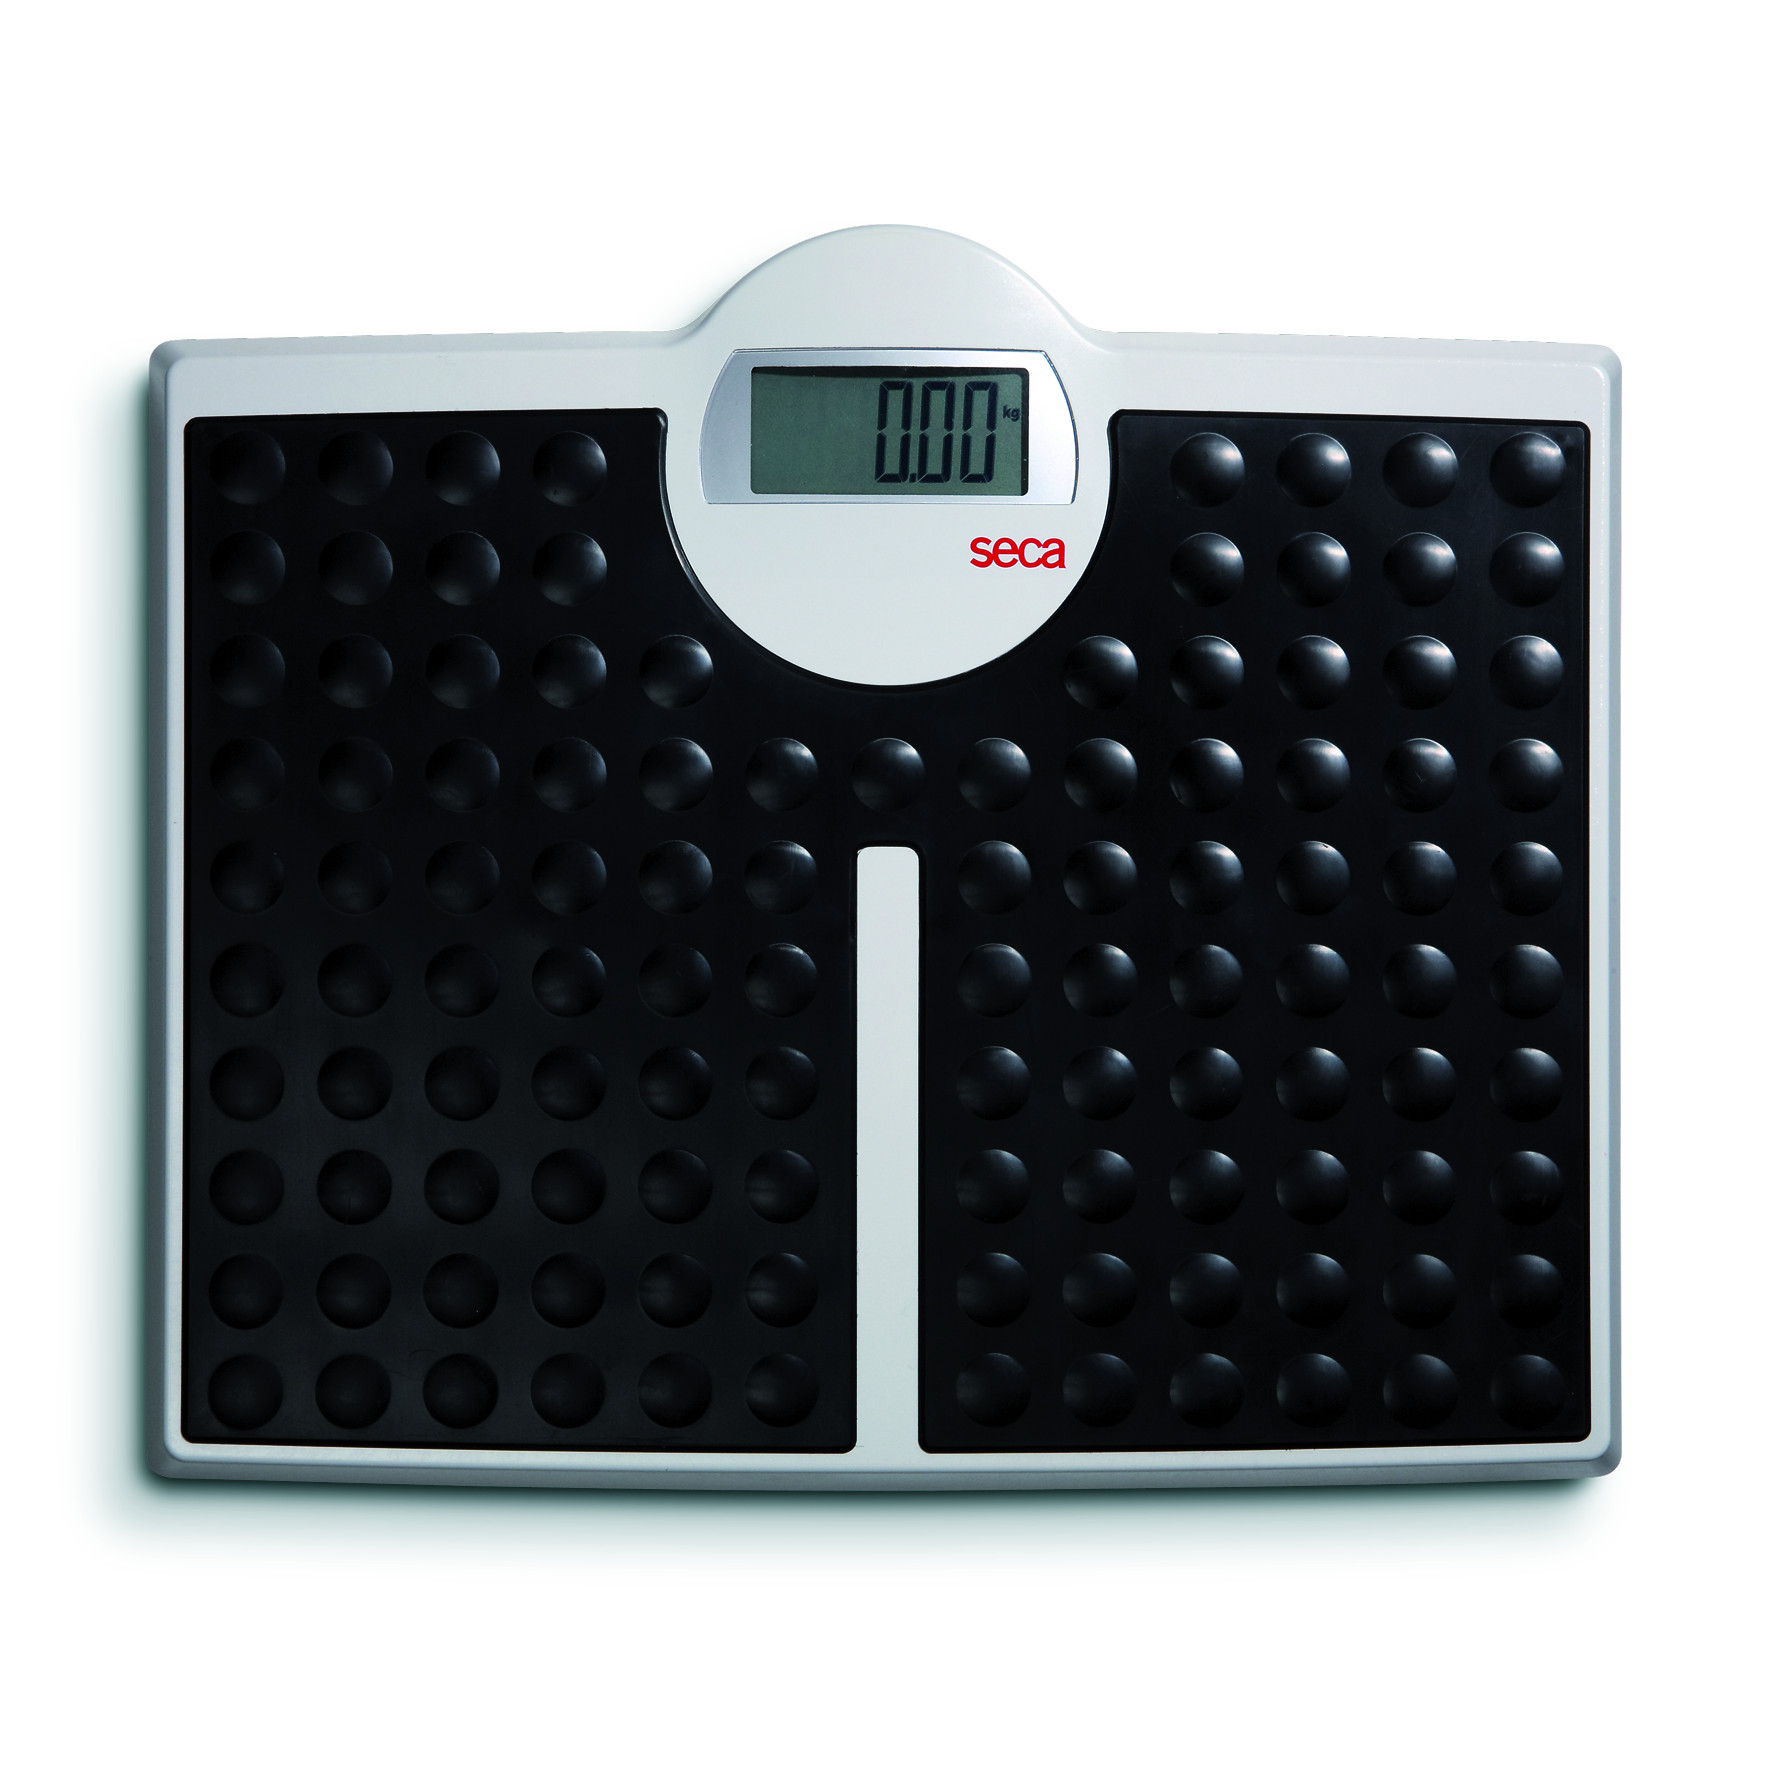 SECA 813 HIGH CAPACITY PERSONAL SCALE